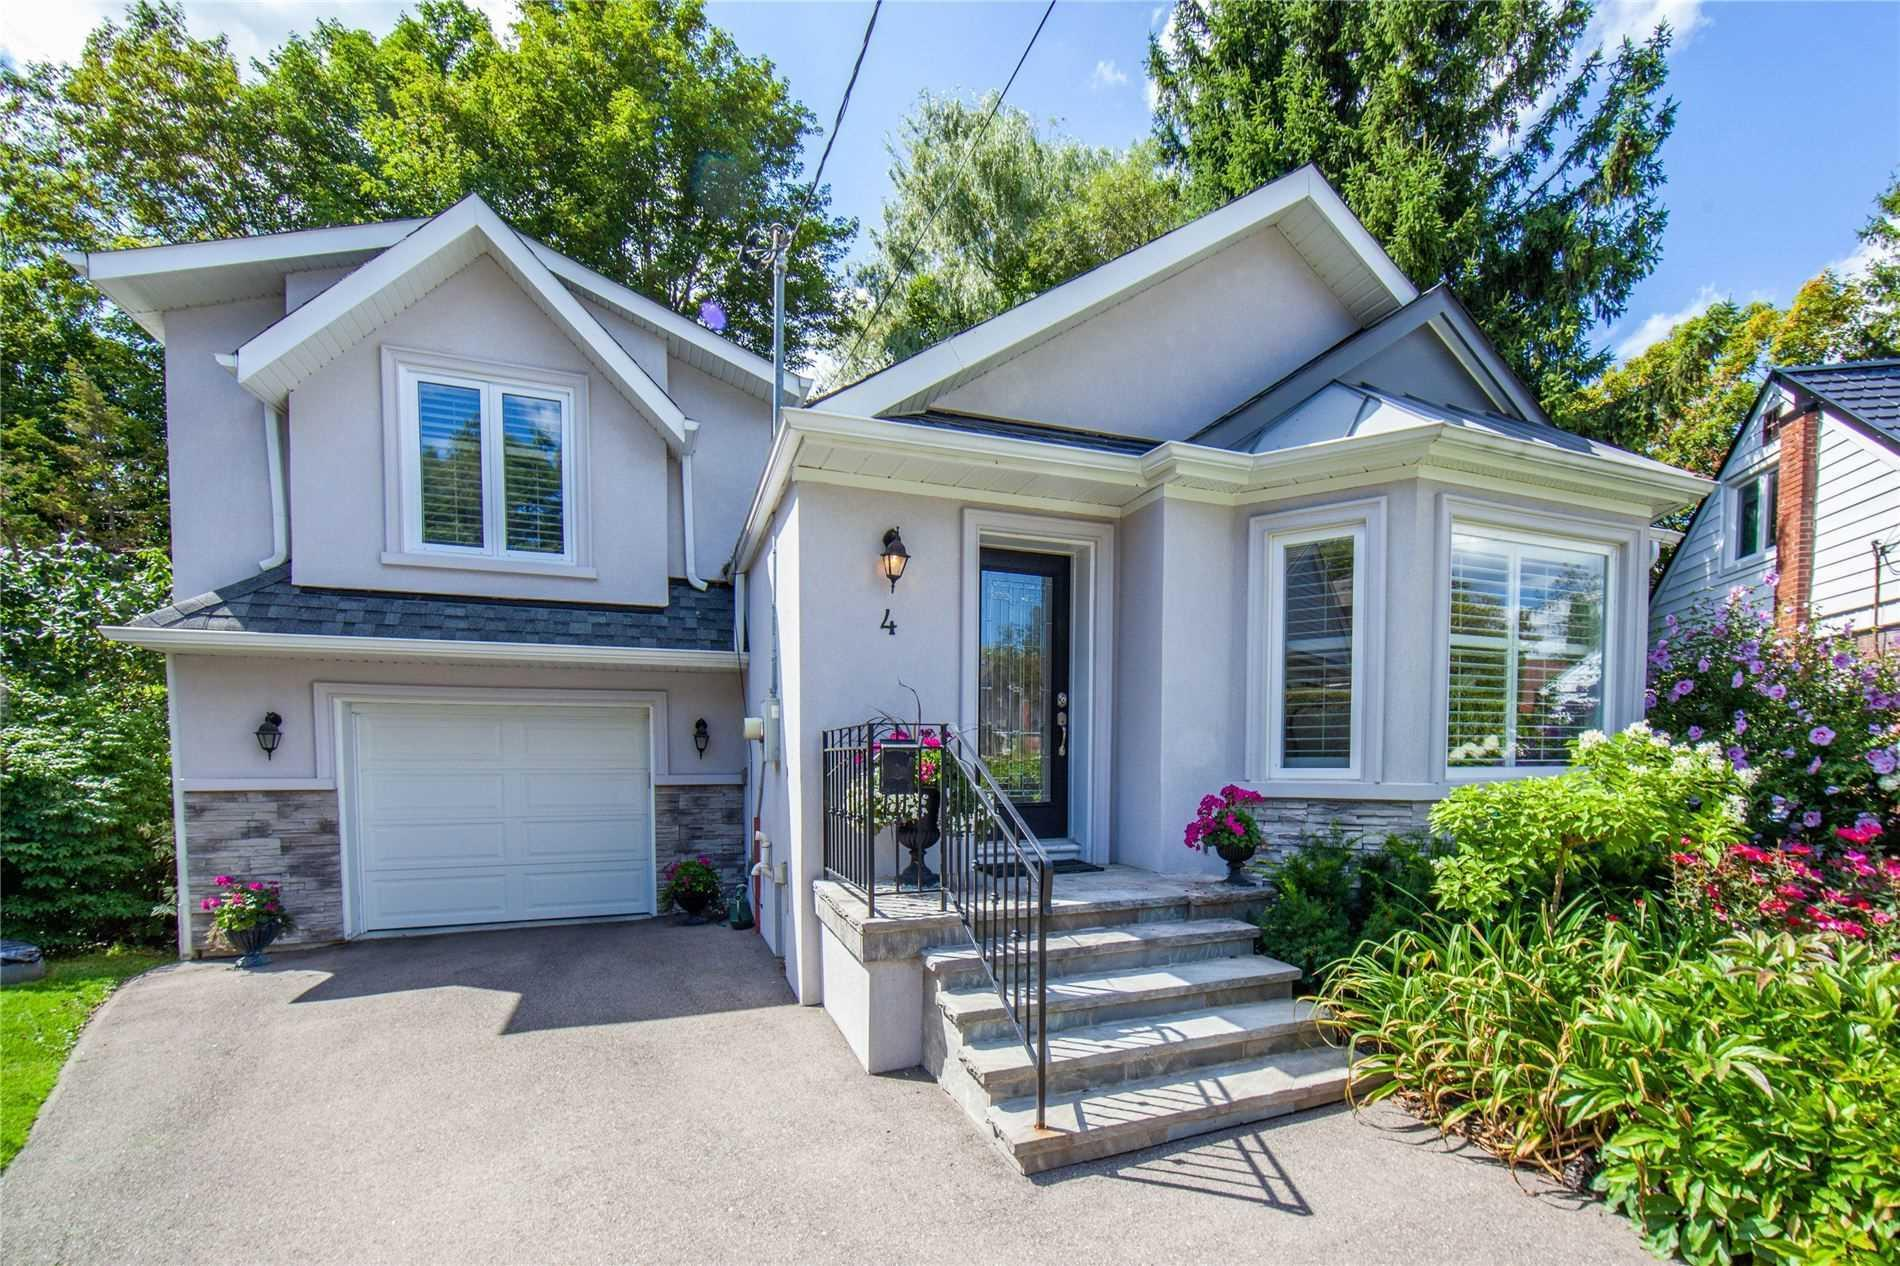 Houses for Sale in Toronto - Search MLS | Zoocasa